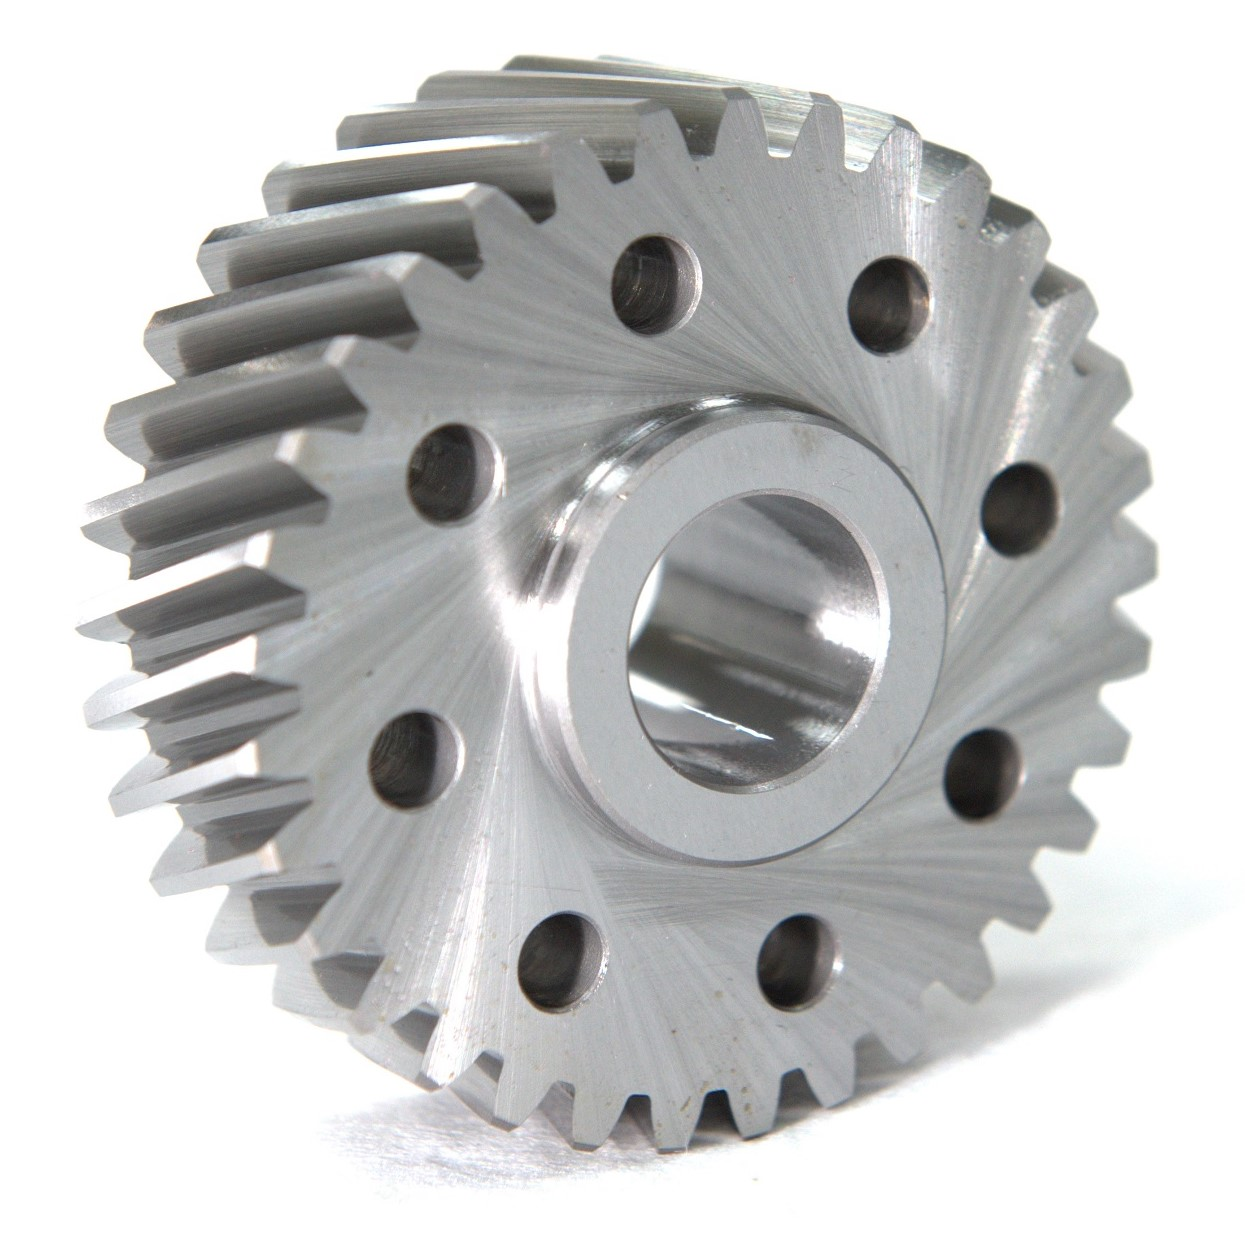 STANDARD PINION FOR RACKS